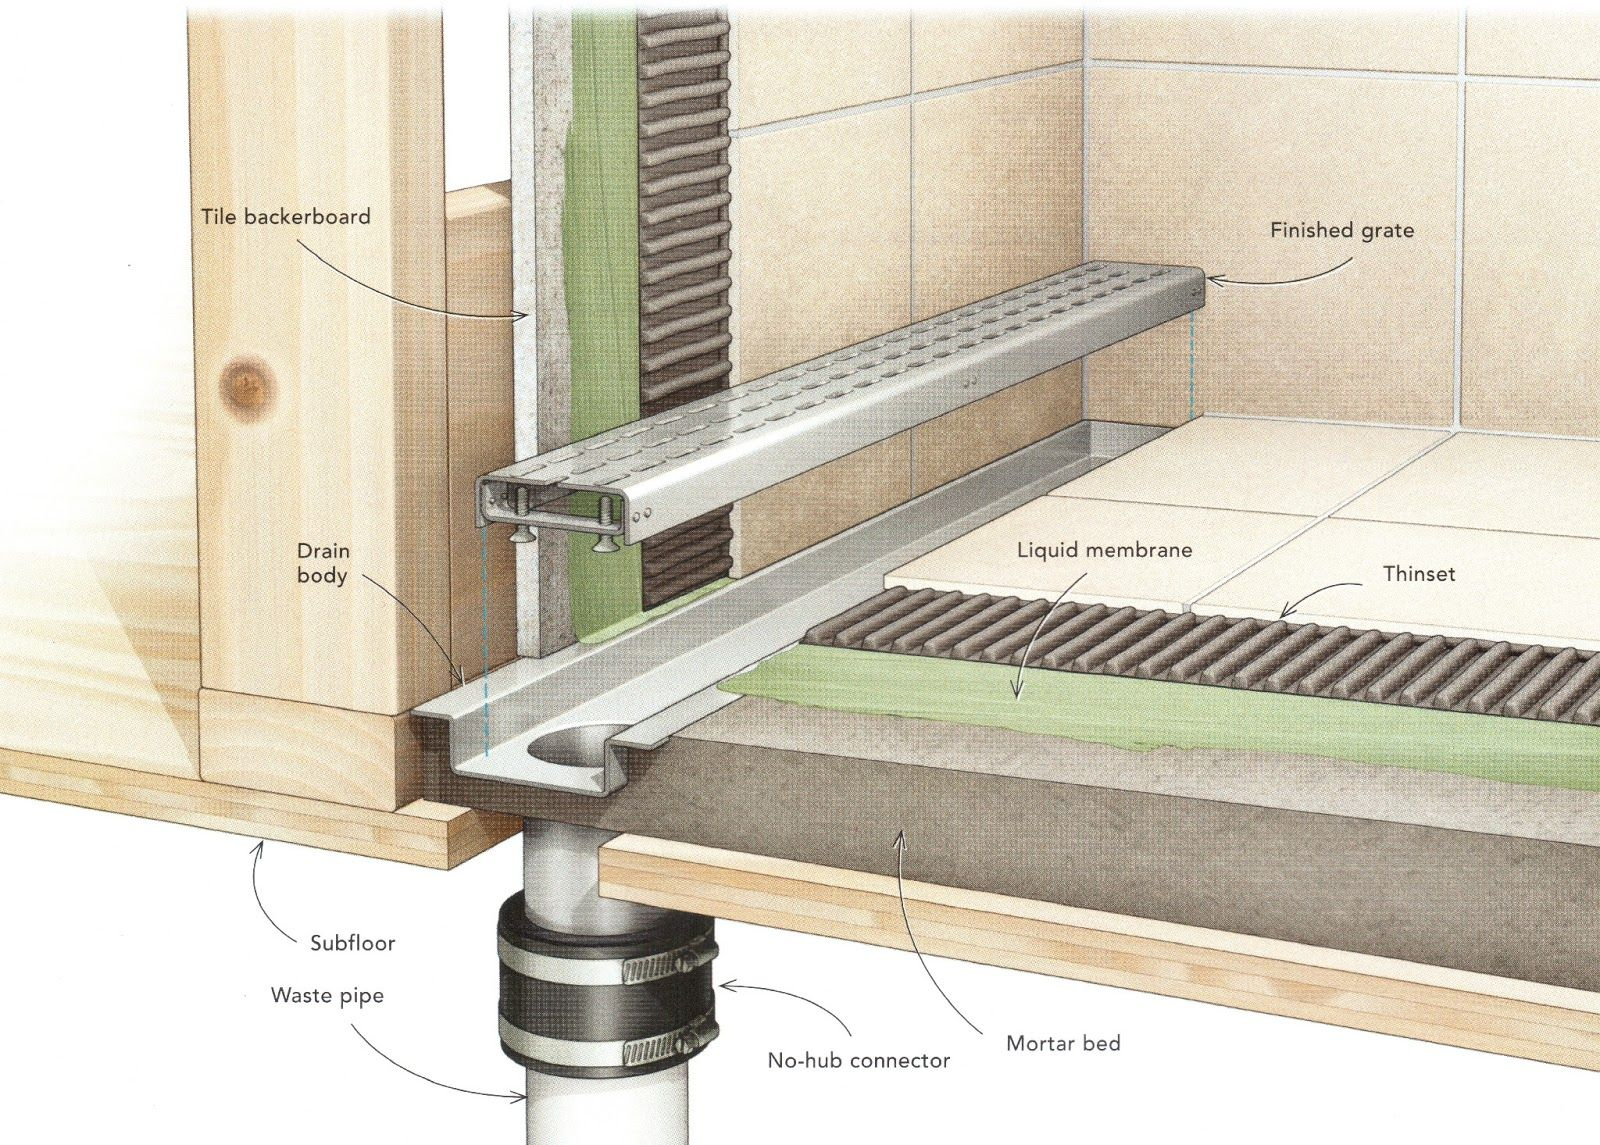 Technical linear drain 1 600 1 145 pixels book local plumbers https Kohler bathroom design tool